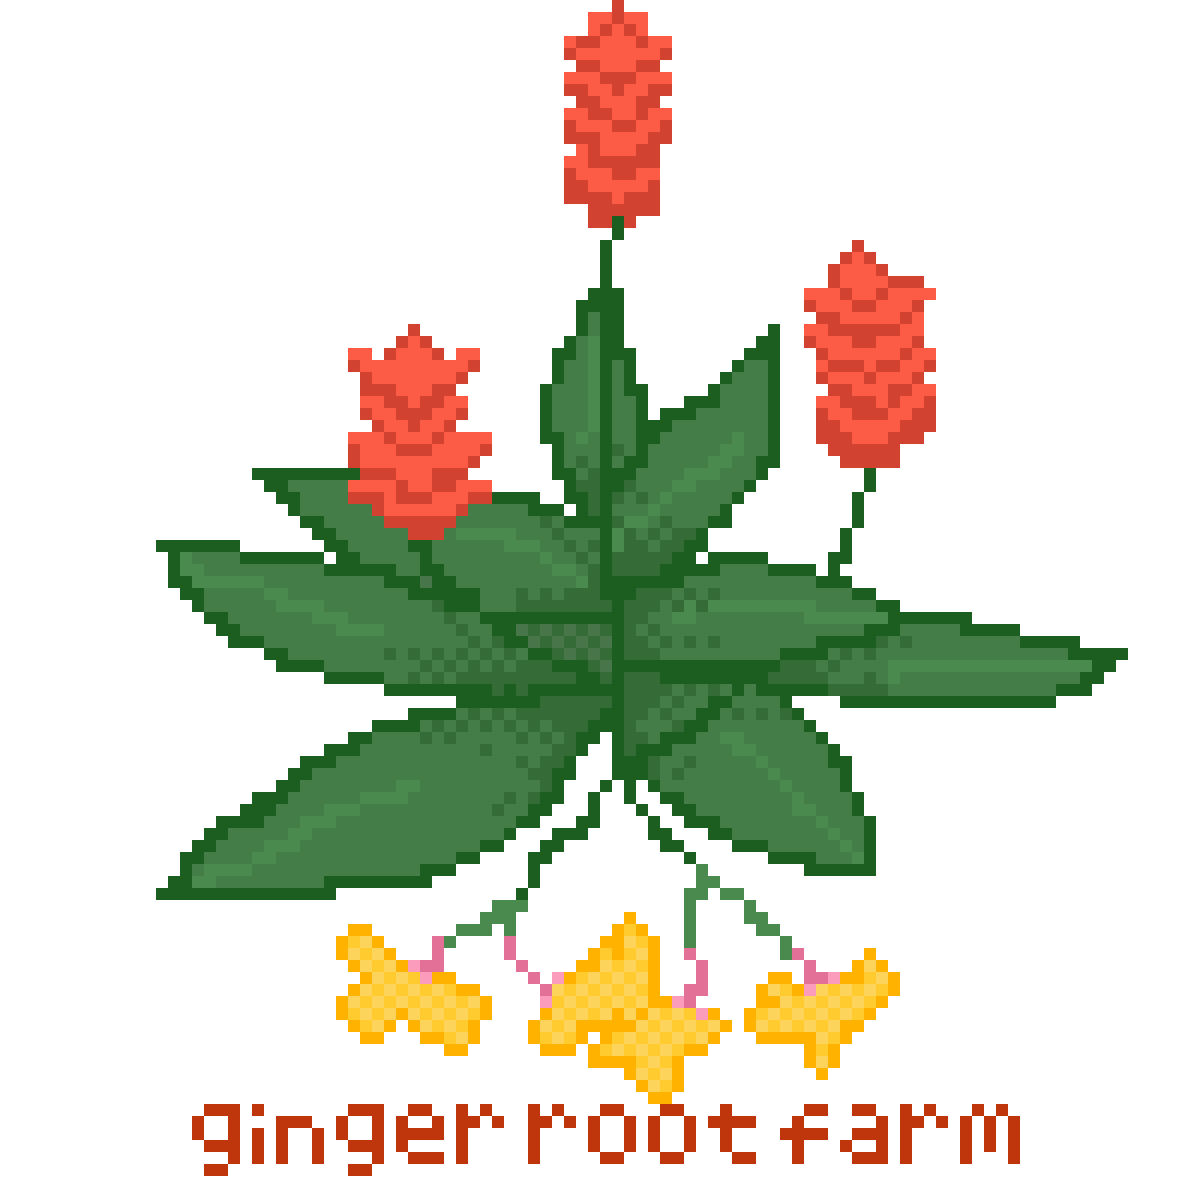 ginger root farm logo by gingerrroot